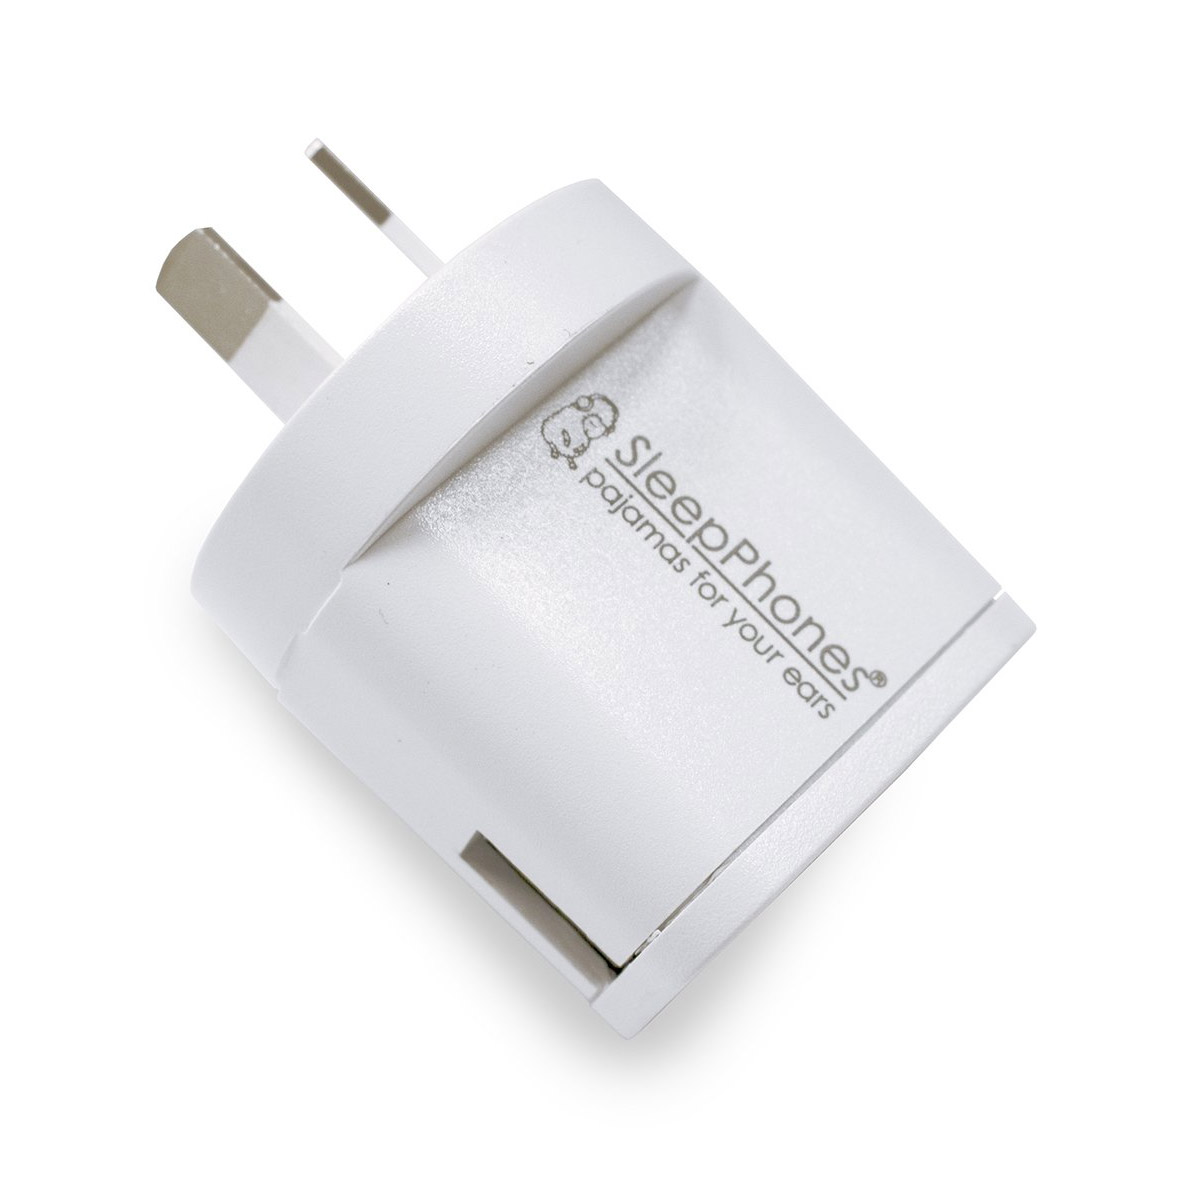 Acoustic Sheep SleepPhones USB Wall Adapter Charger